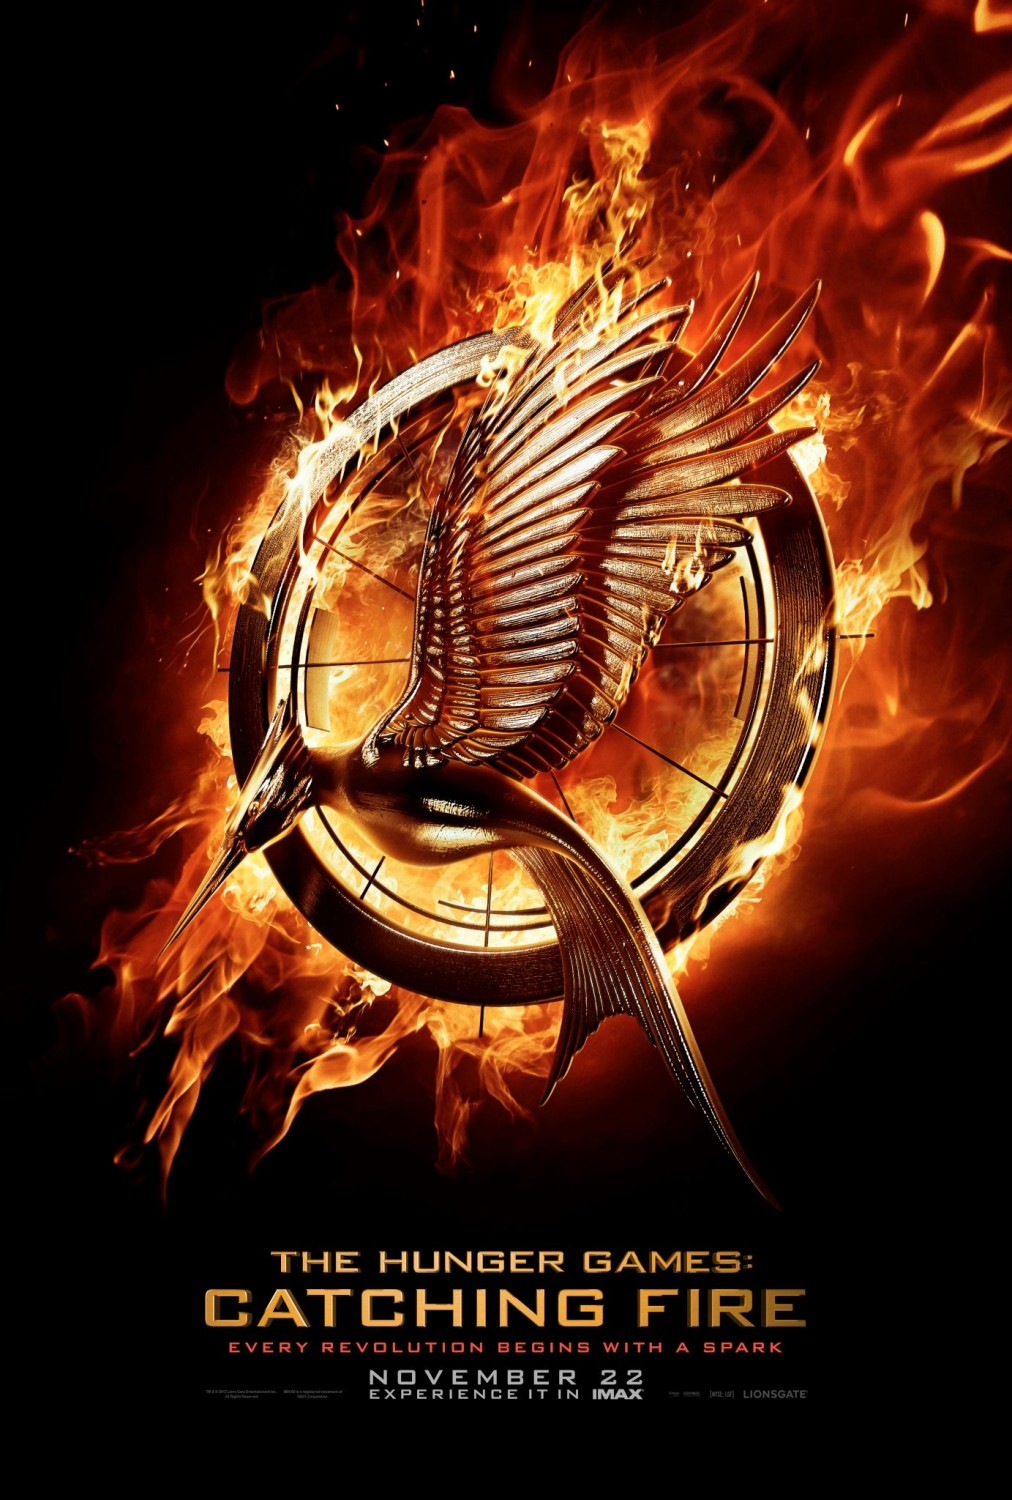 The hunger games catching fire film review geardiary biocorpaavc Choice Image